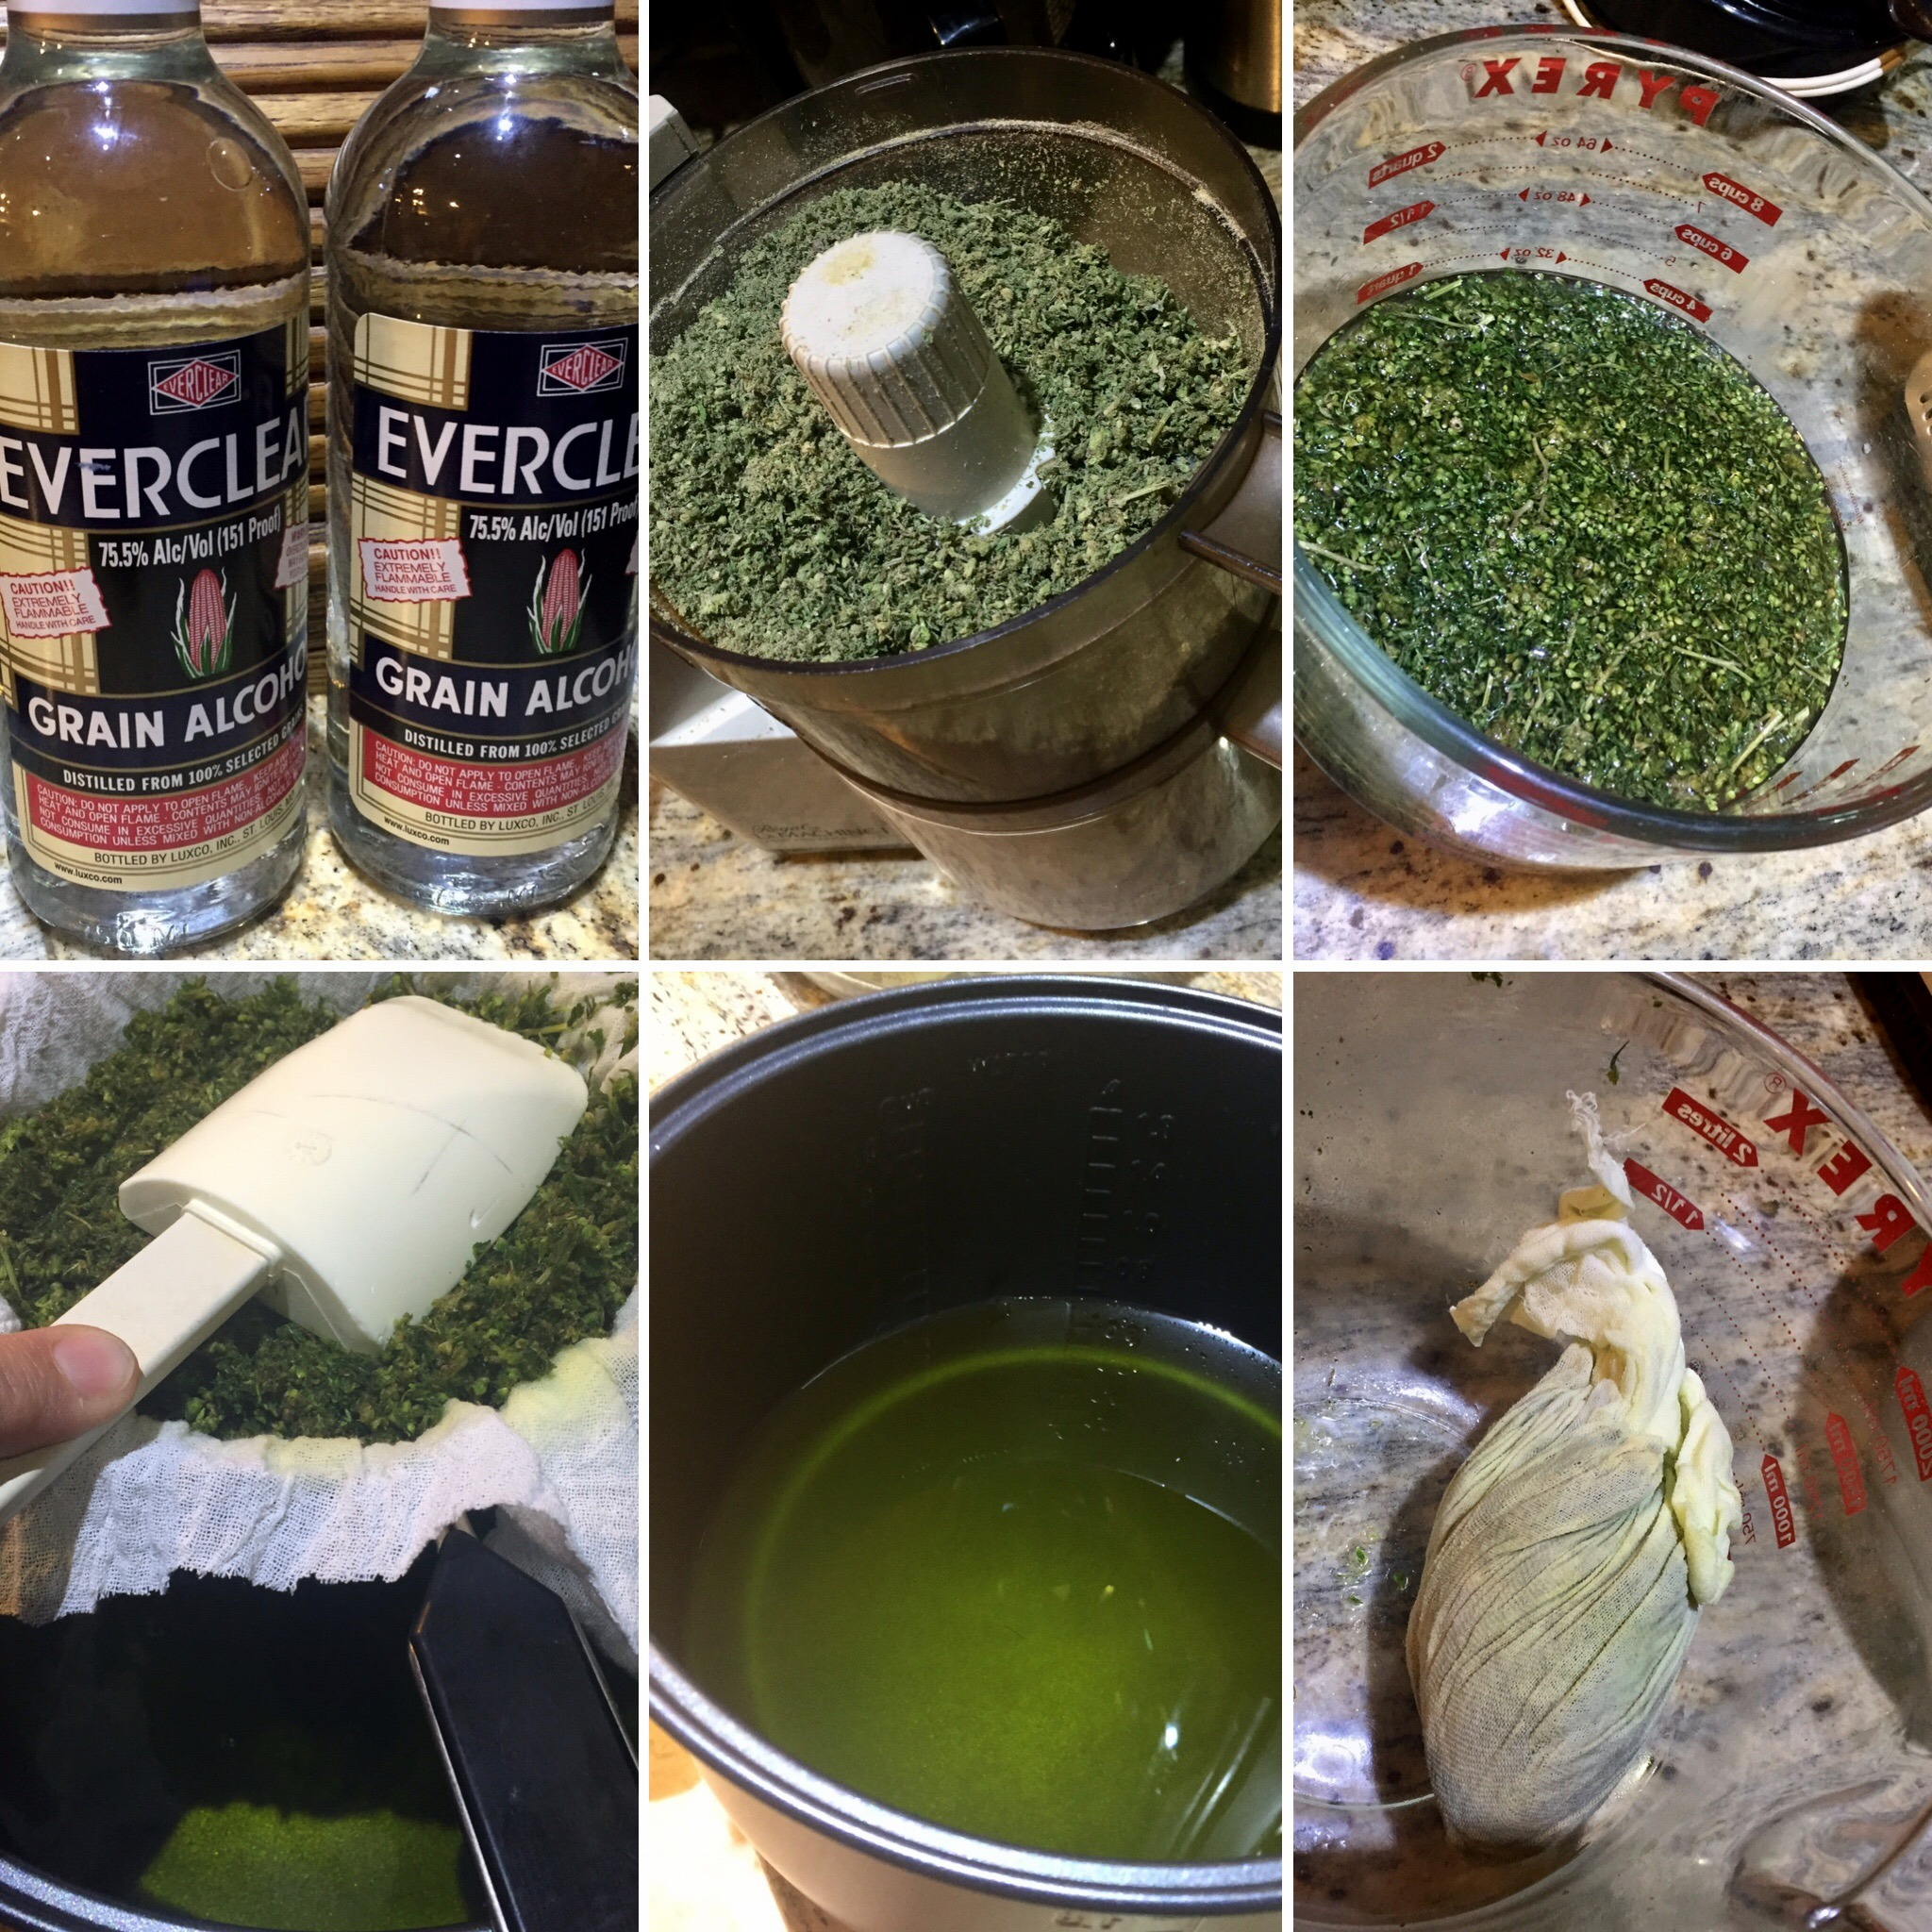 Cannabis Concentrate - Shown here using Everclear grain alcohol at 150 proof. Check your state laws for availability. Do not use drinking alcohol, as it has too much water. Moonshine and Isopropyl alcohol works, but you must make sure all the alcohol is cooked off.Note: This mix is very green, as there was more trim with leaves than bud, presenting with more chlorophyll, causing the bright green color and a weaker final product.Photos: Sharon Letts